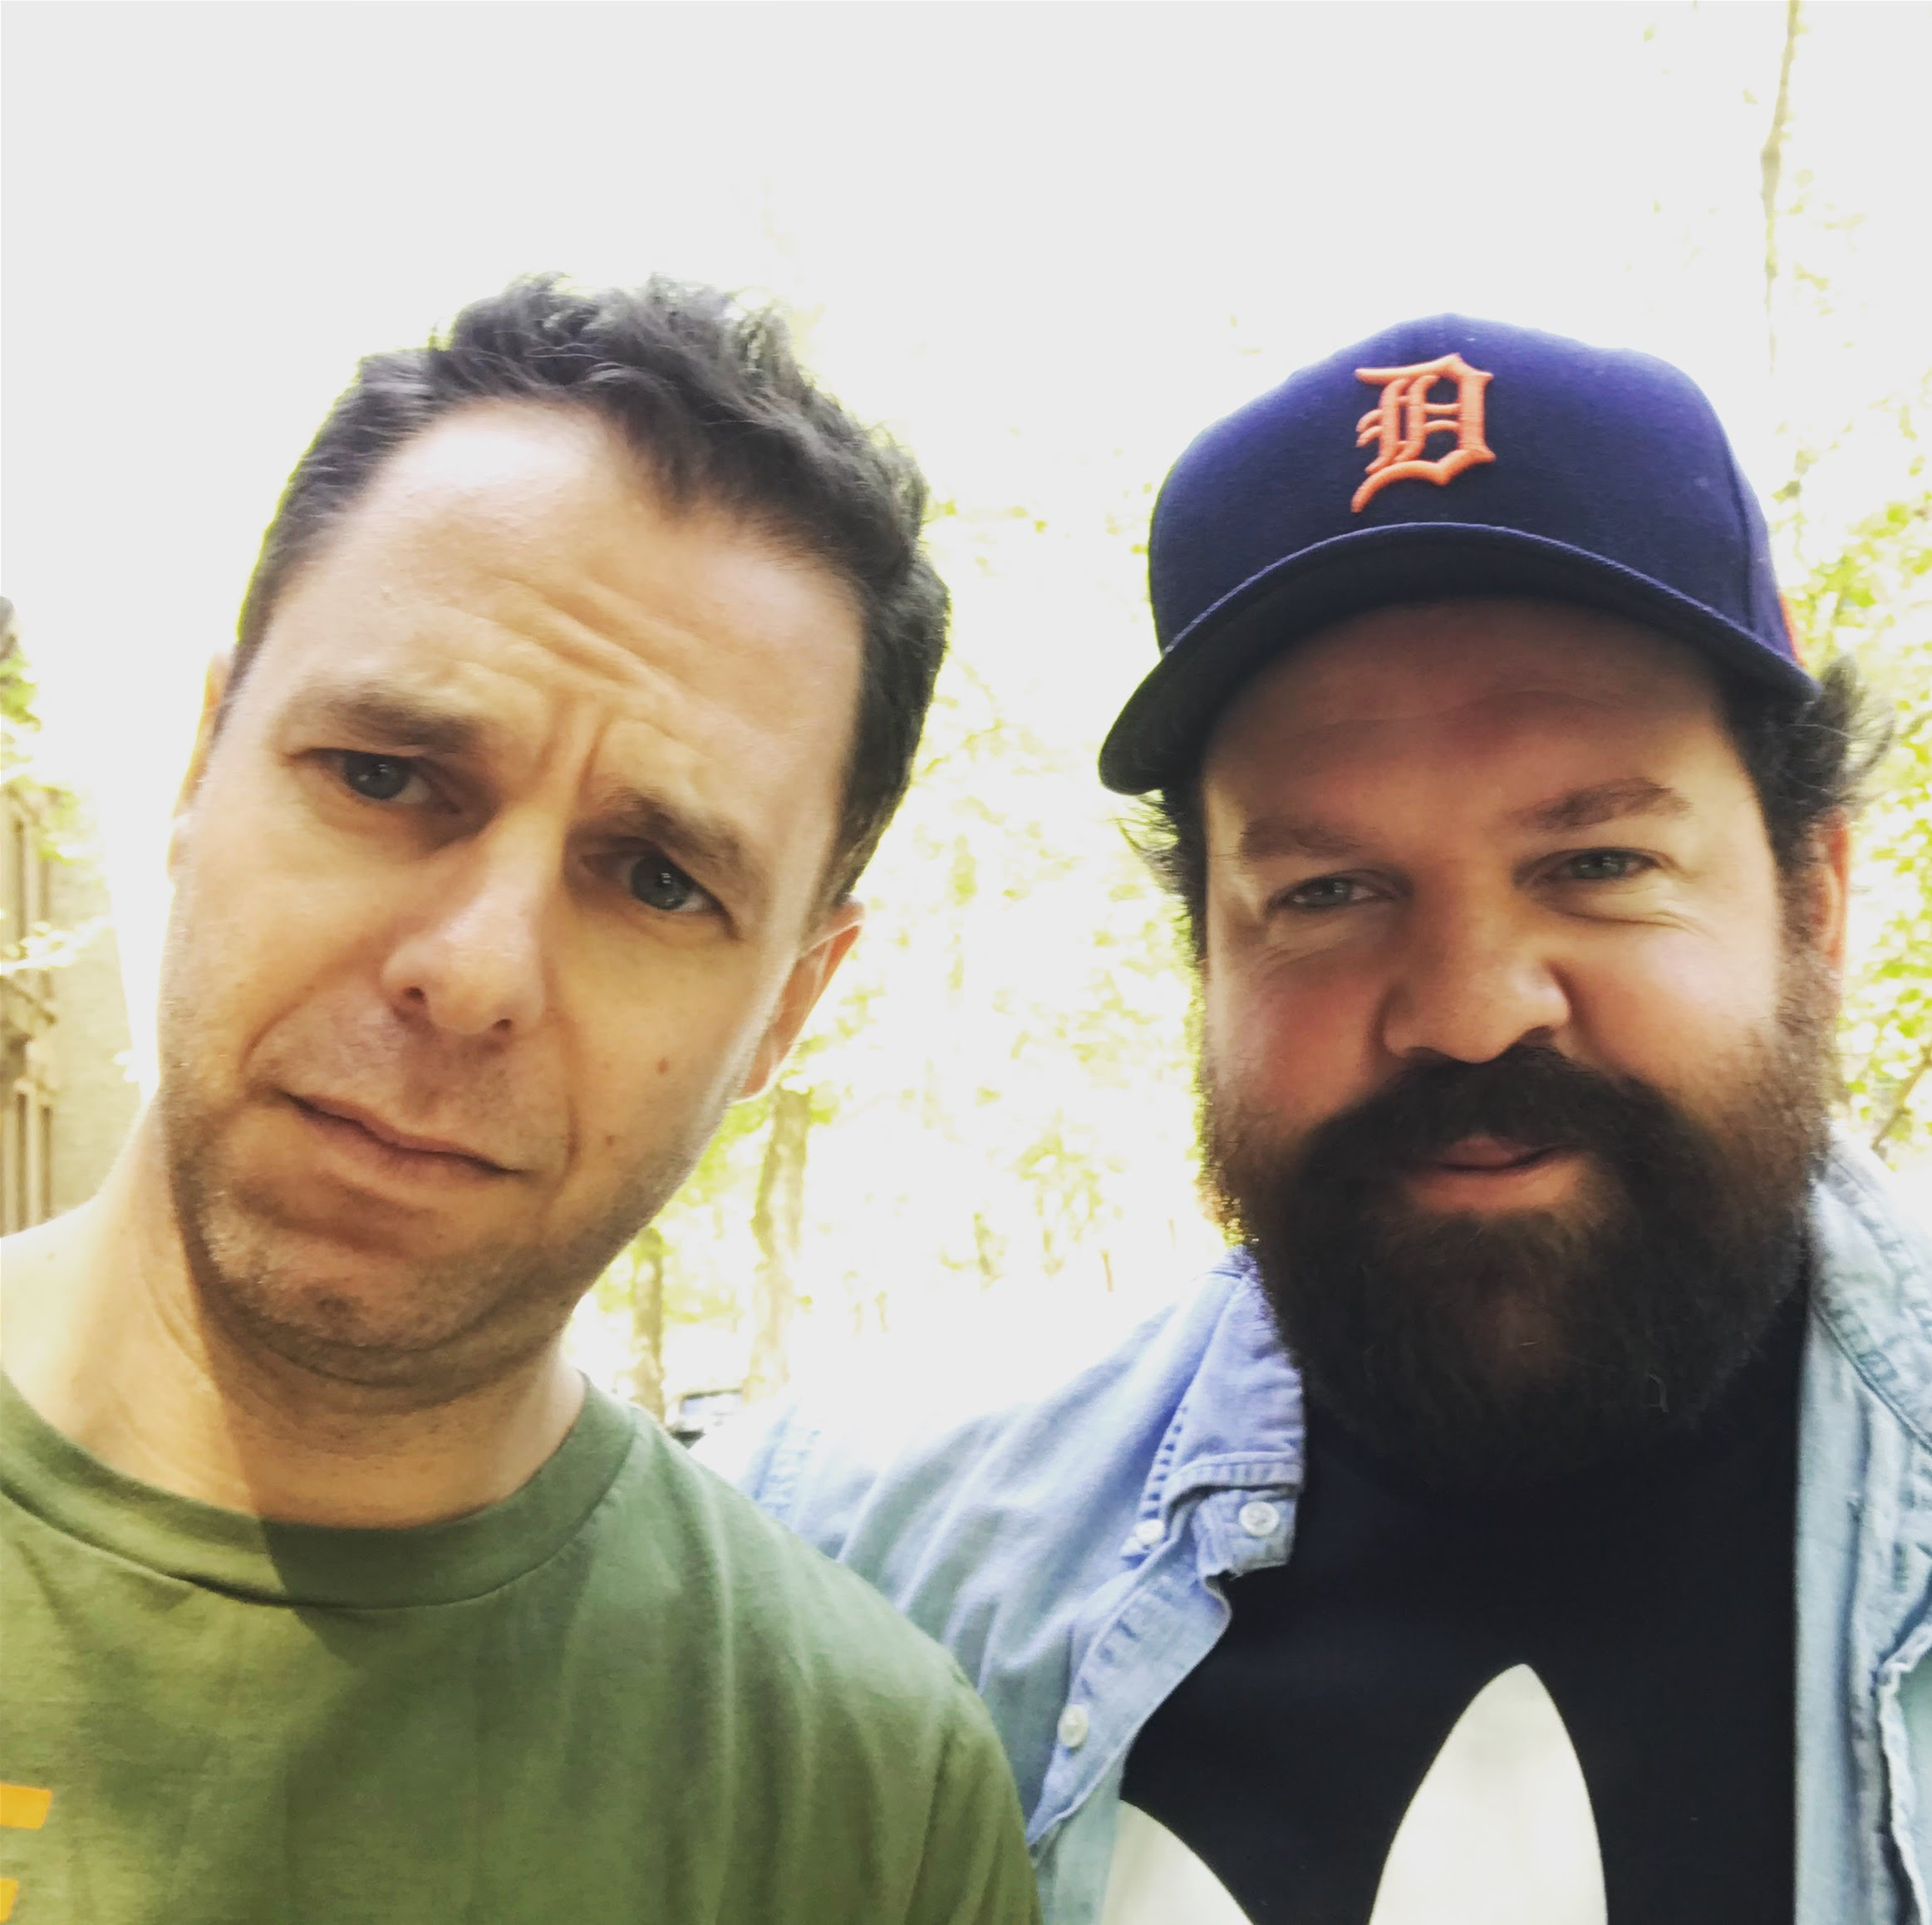 With Donovan Woods, Brooklyn, May 2018.